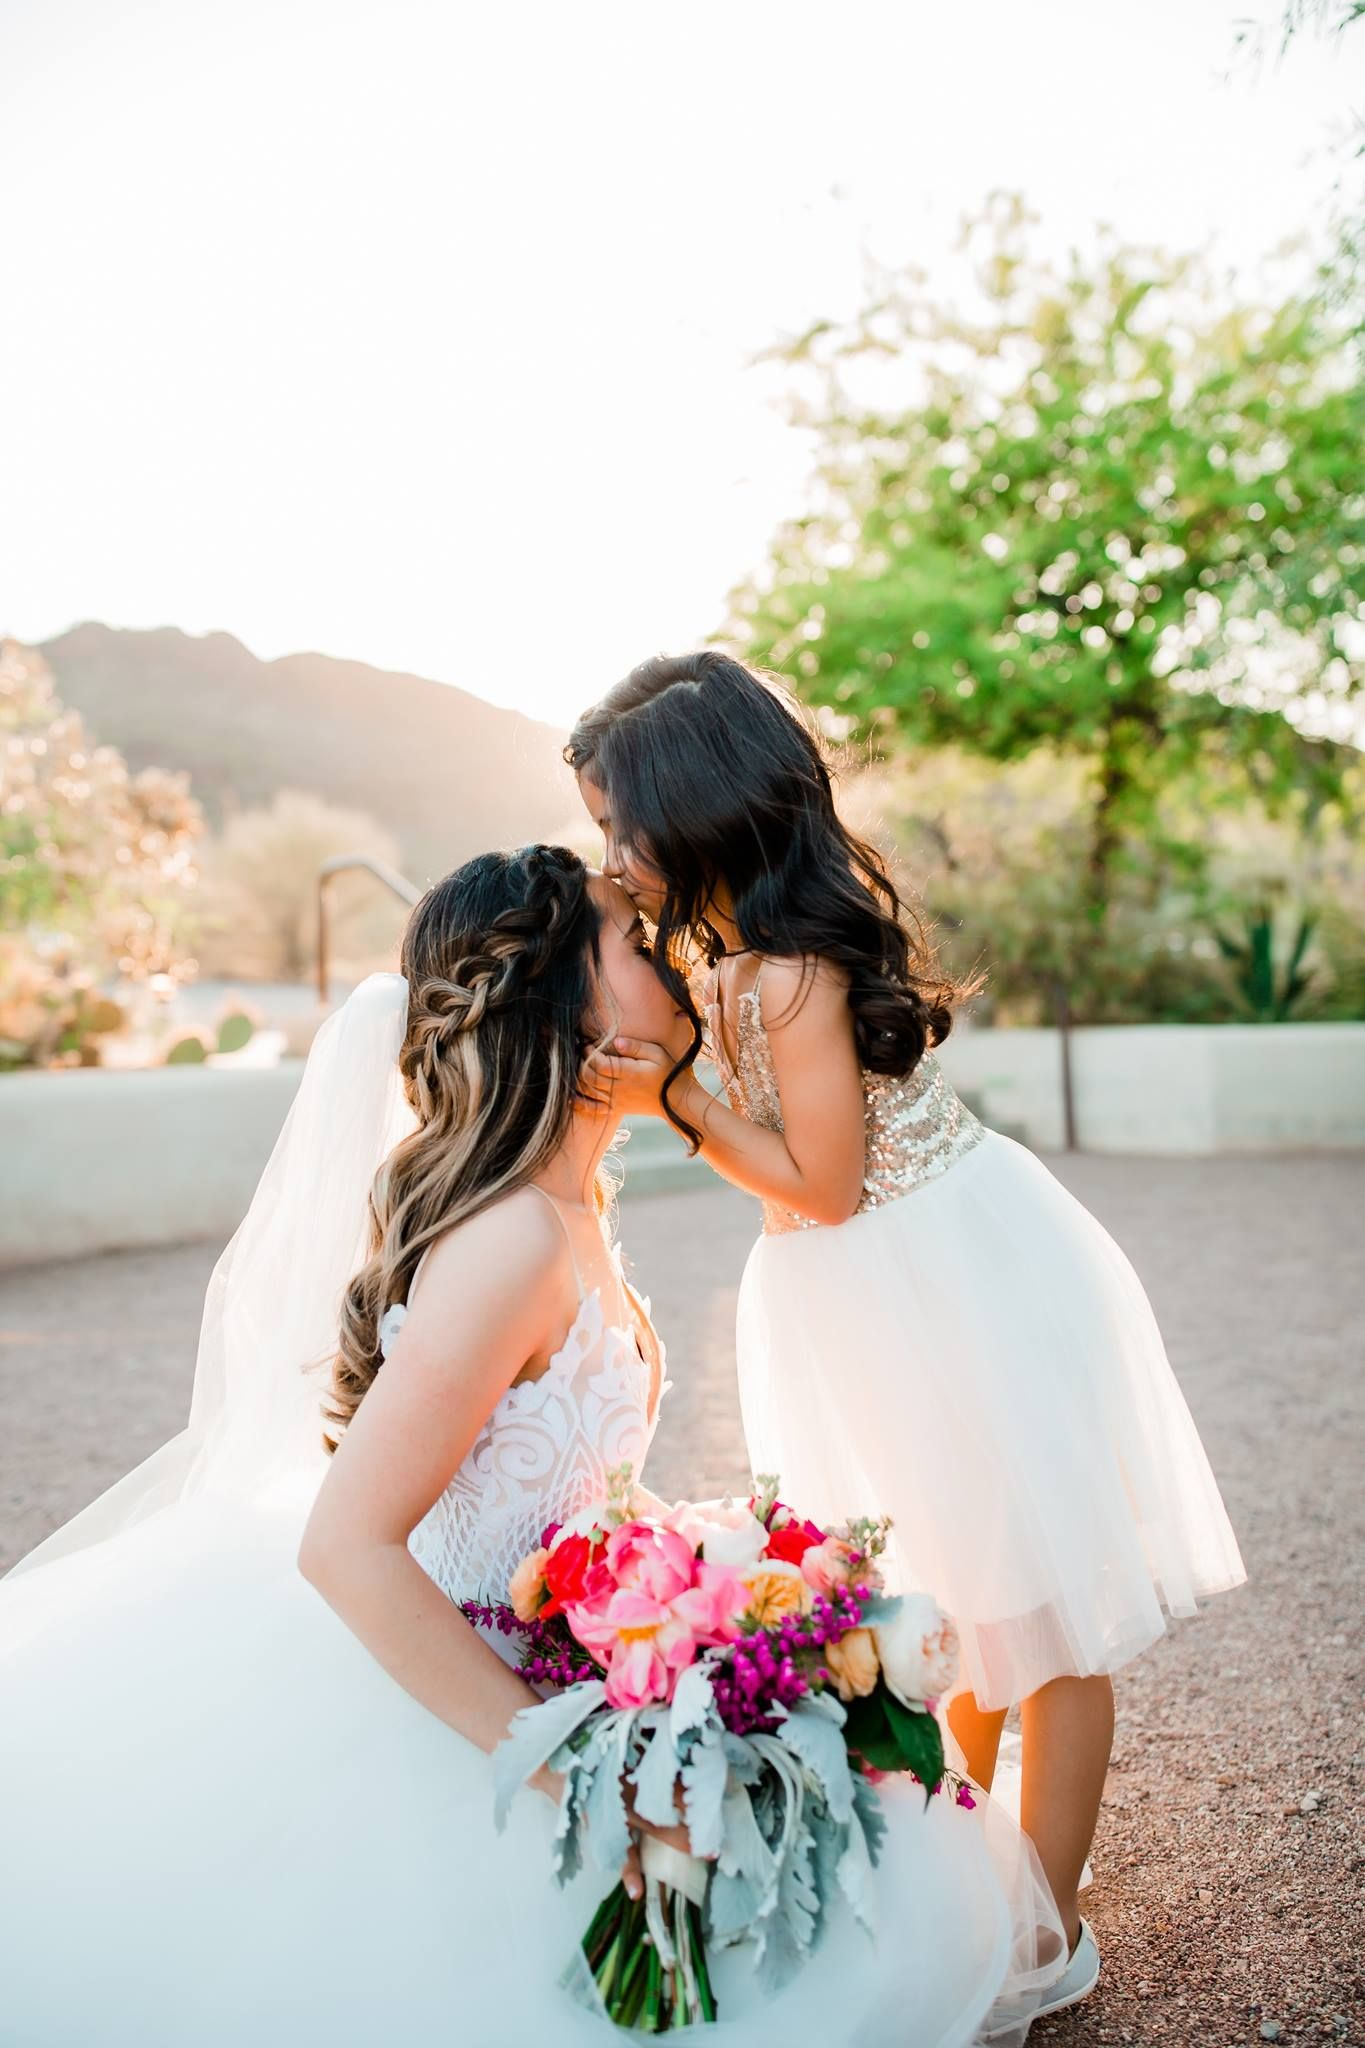 aa69910f5e205 Sweet Bride and Daughter Special Moment / Mother and Daughter Wedding  Photos #weddingphotography by Brandy Britton Photography